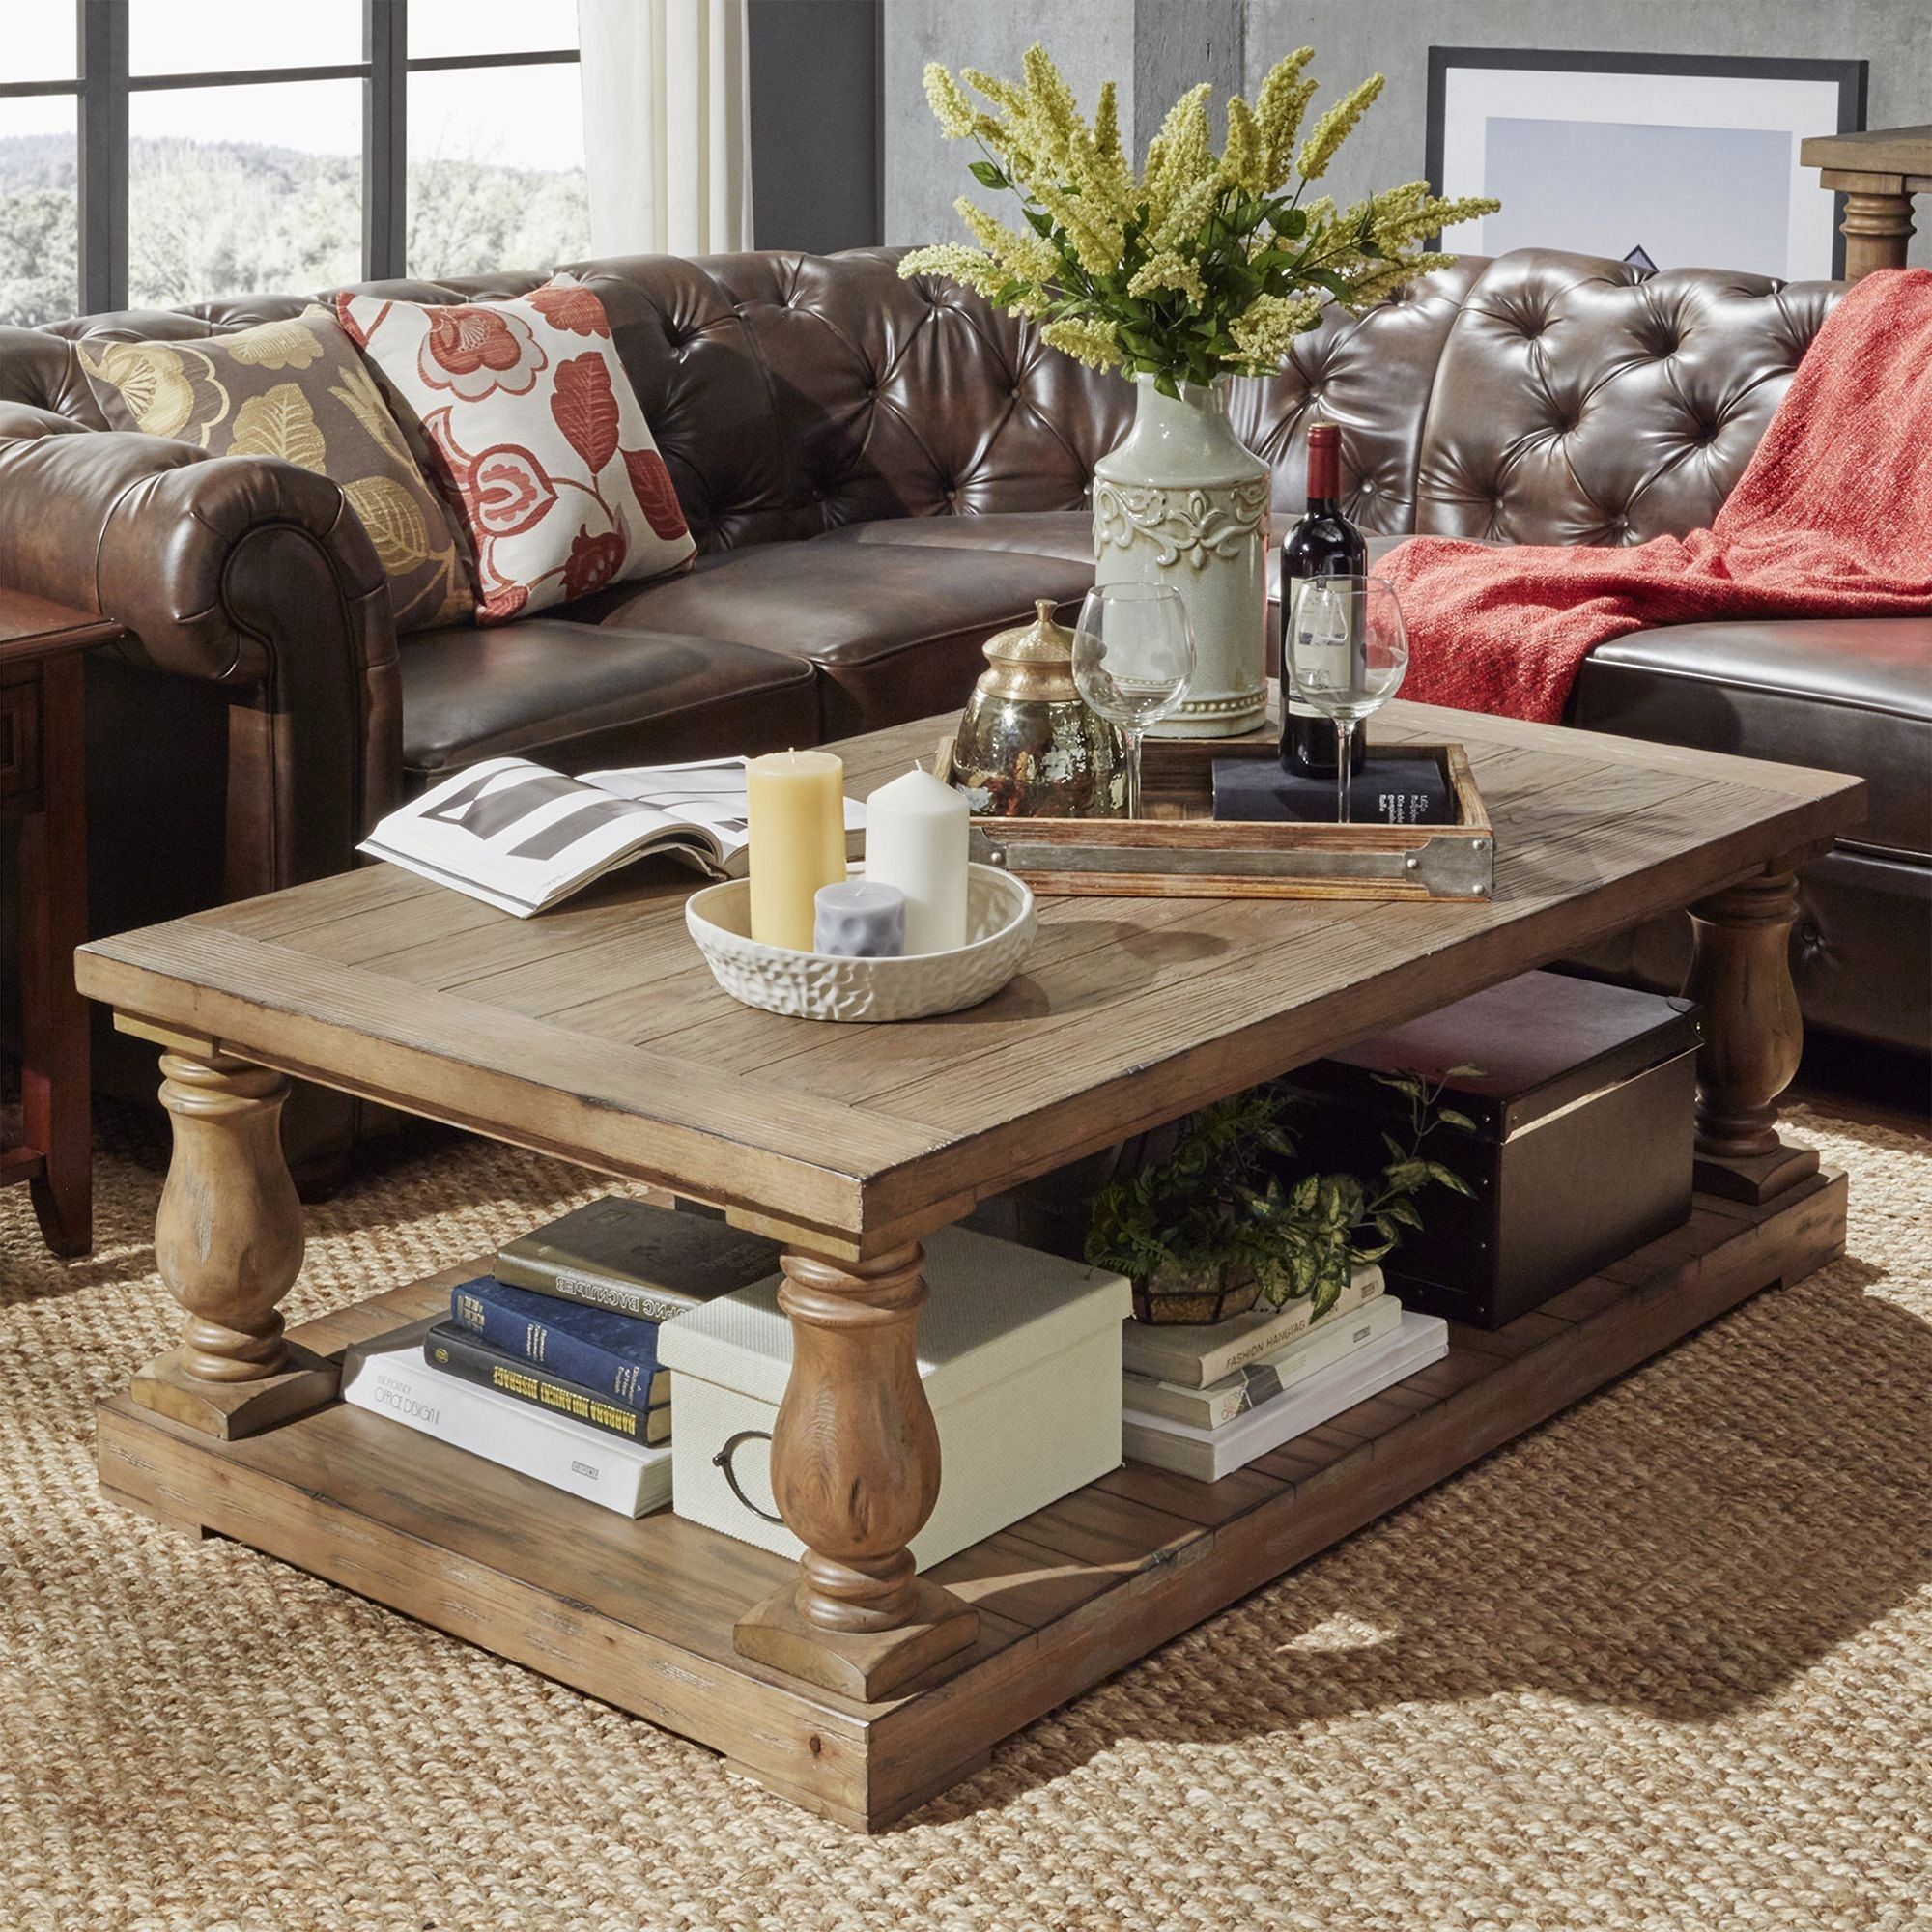 25 Diy Coffee Table Design For Awesome Rustic Living Room Decoration Ideas Pine Coffee Table Living Room Coffee Table Coffee Table